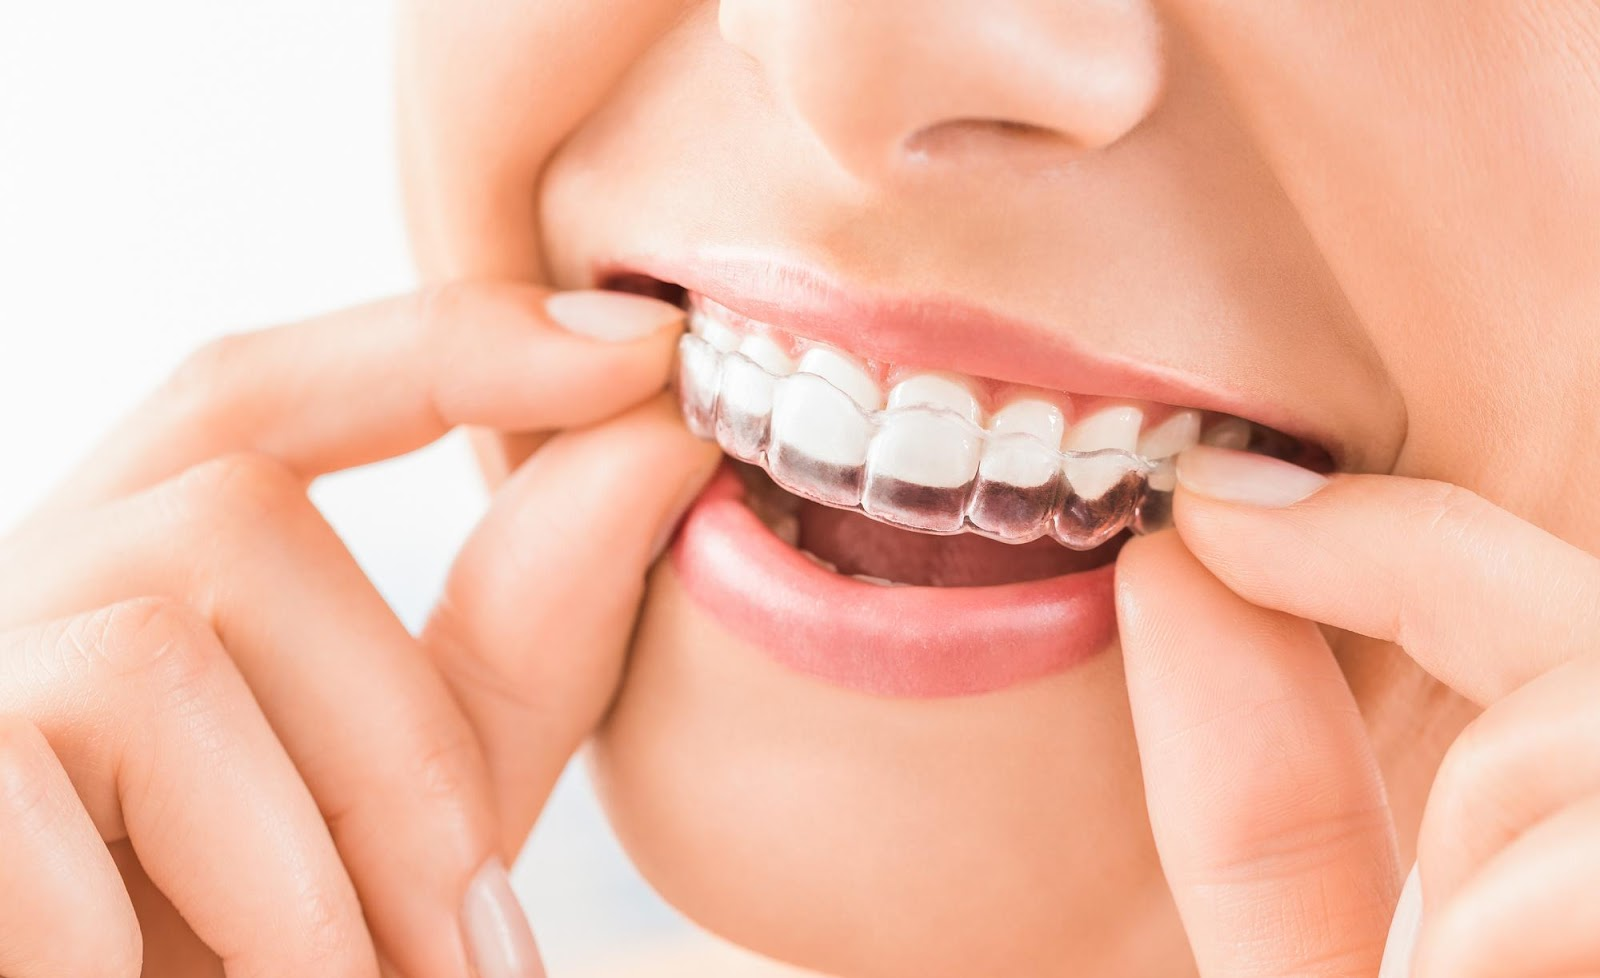 Does Insurance Cover Invisalign: This Is What You Need to Know